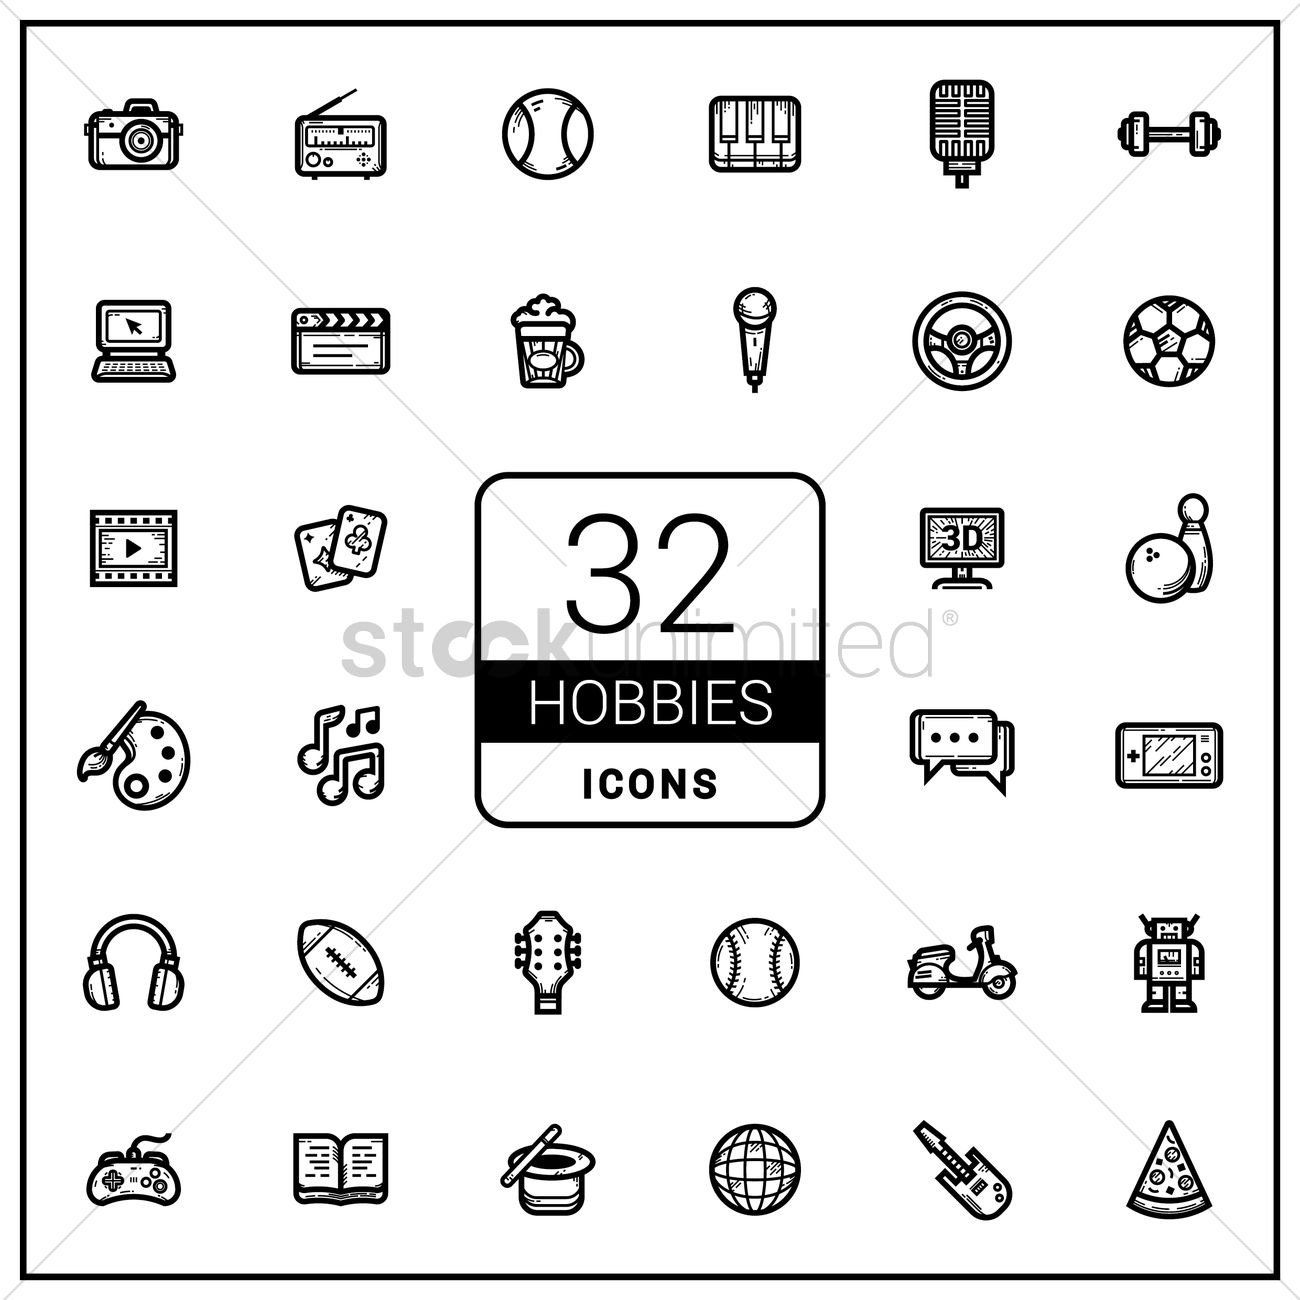 Set Of Hobby Icons Vector Image 1765588 Stockunlimited